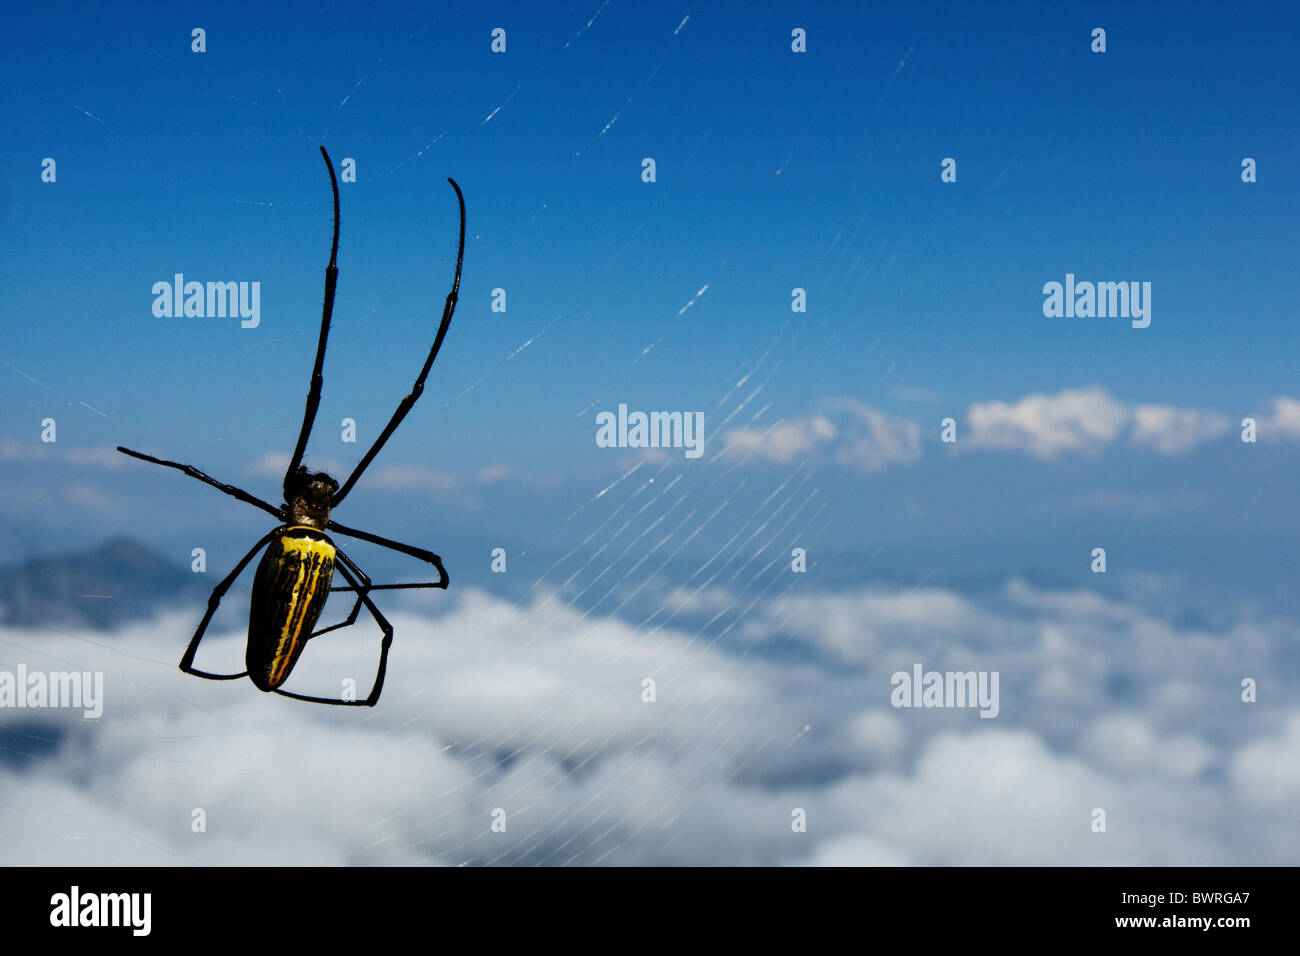 A large spider weaves its web against a view of the Himalayas seen from Bandipur, Nepal on Friday October 30, 2009. - Stock Image